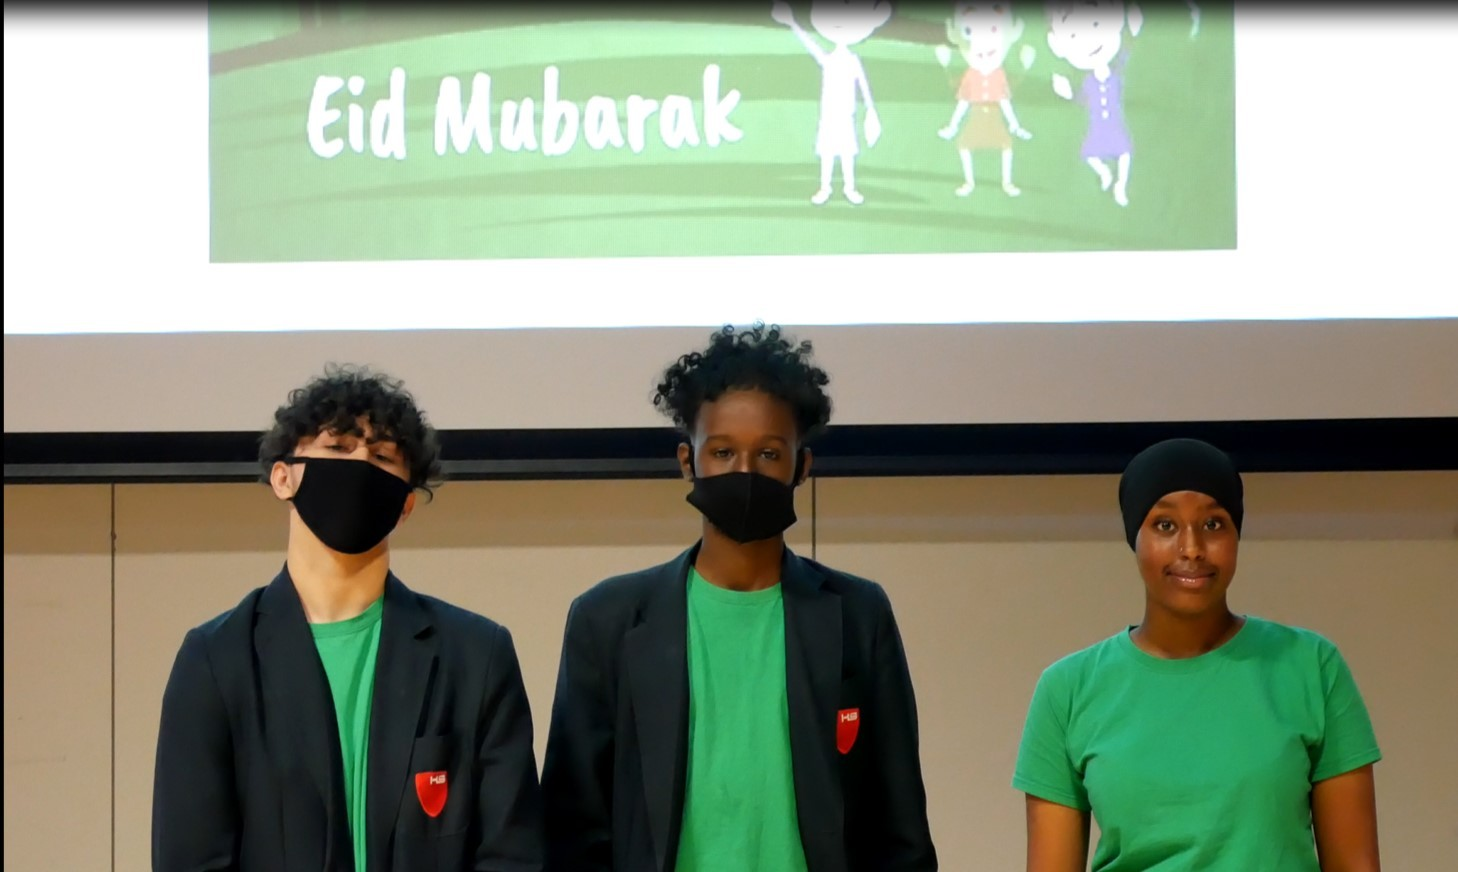 Haverstock School Camden, Year 10 Students Deliver a 'Superb' Assembly on the history and importance of Ramadan